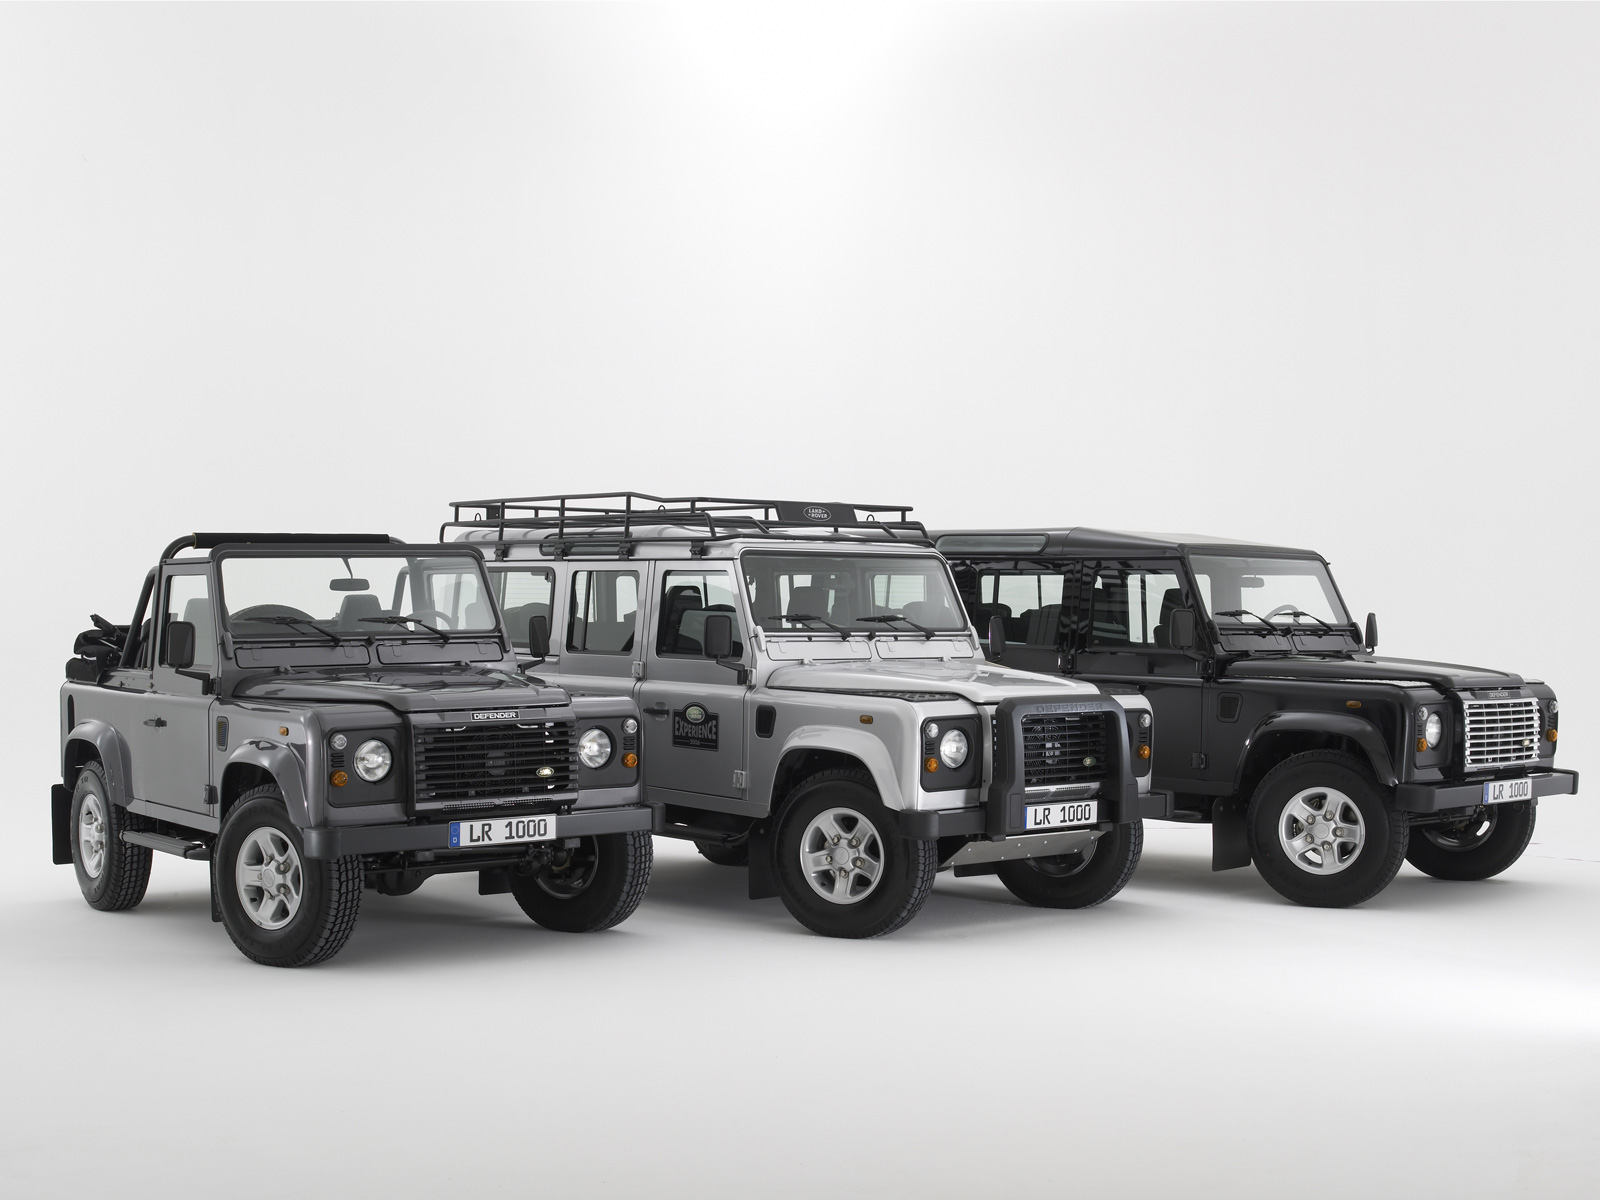 News Land Rover Defender To Be Scrapped Aronline